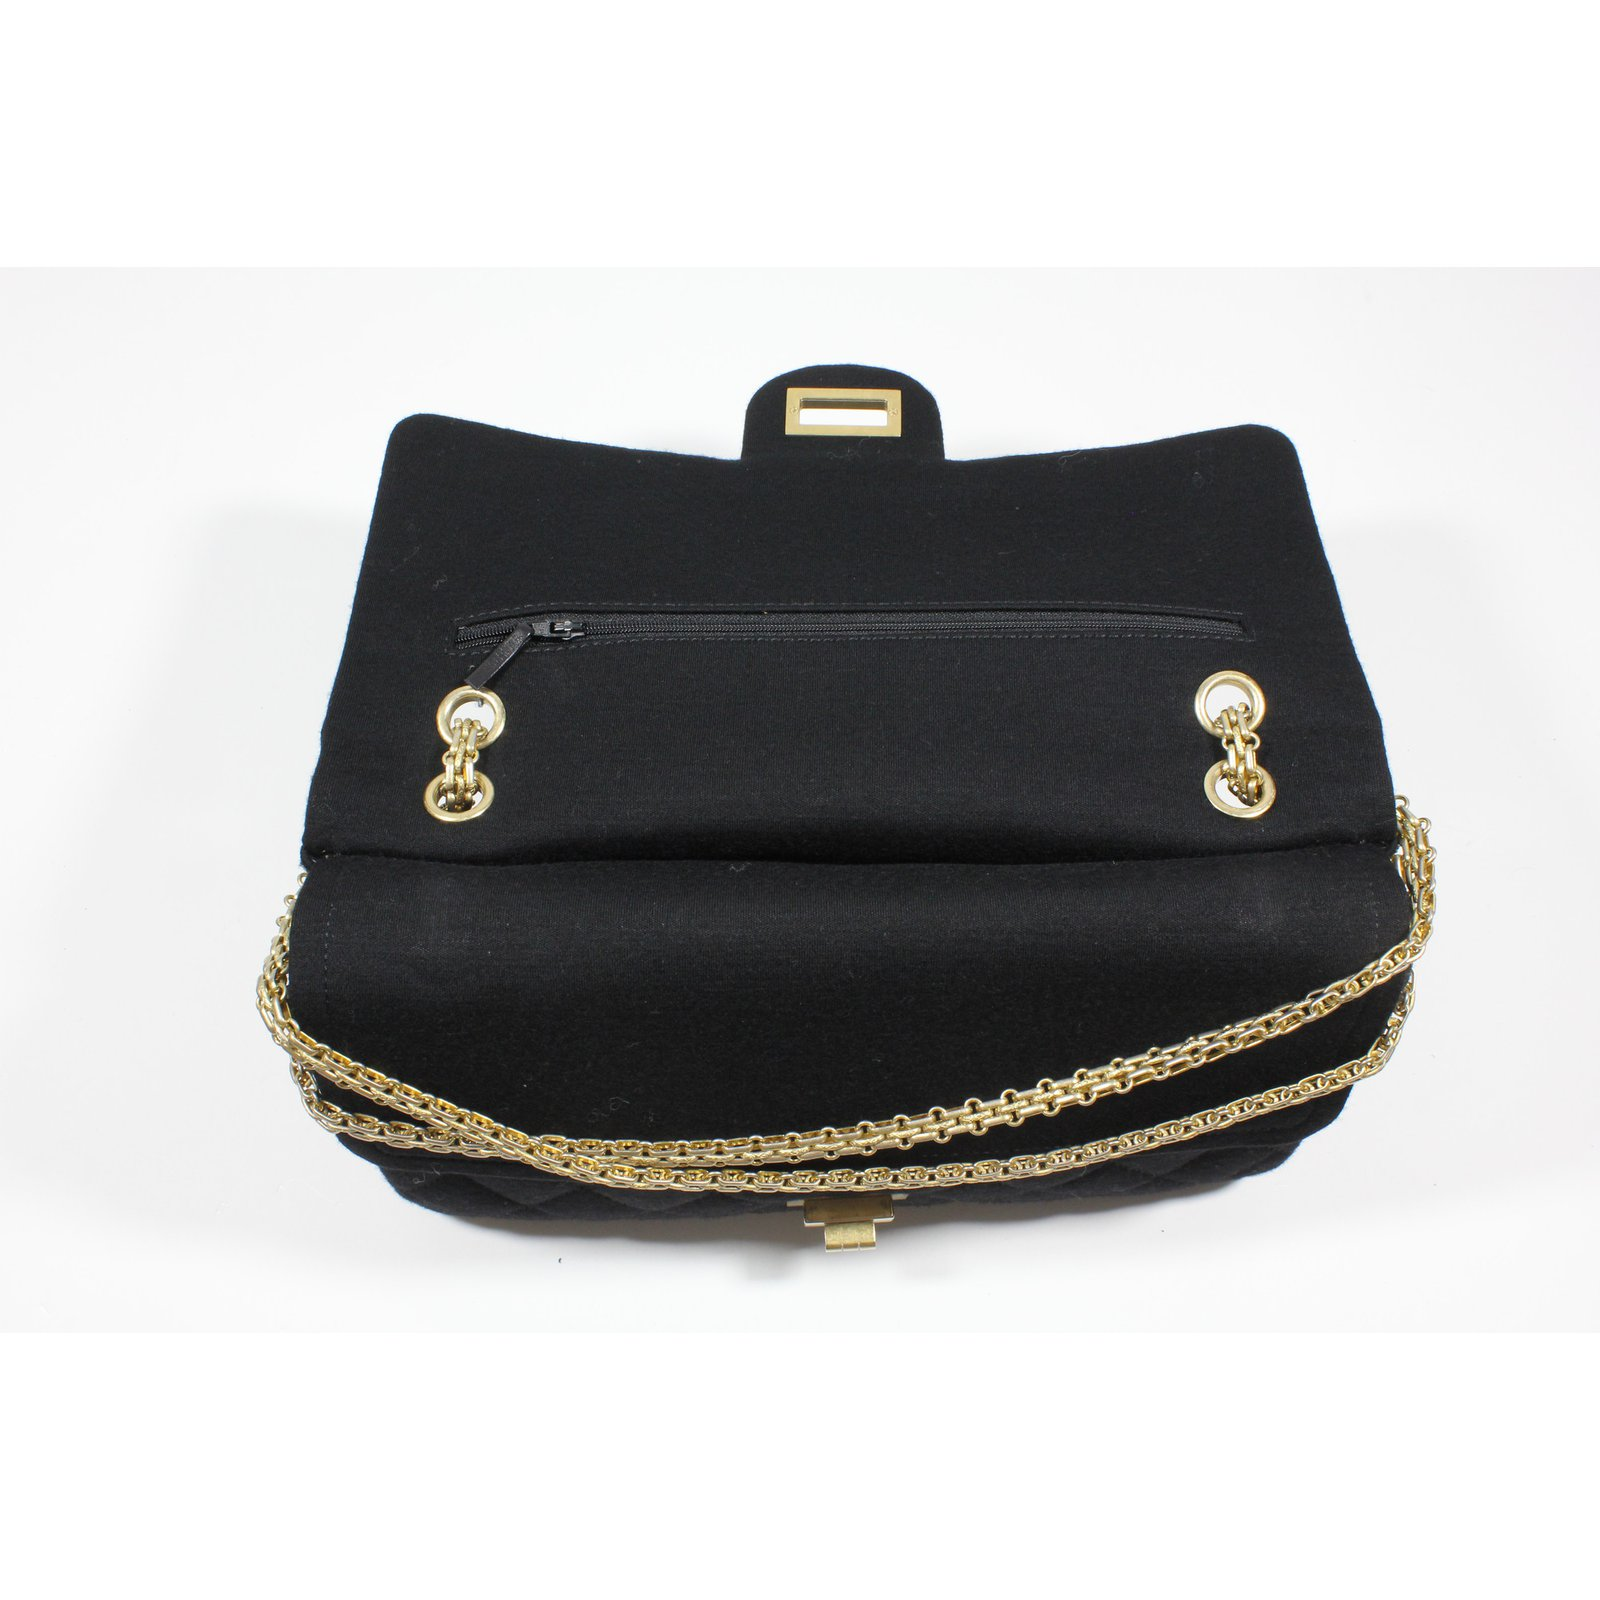 7a41ef745b58 Facebook · Pin This. Chanel Jersey 2.55 bag Handbags Other Black ref.21080